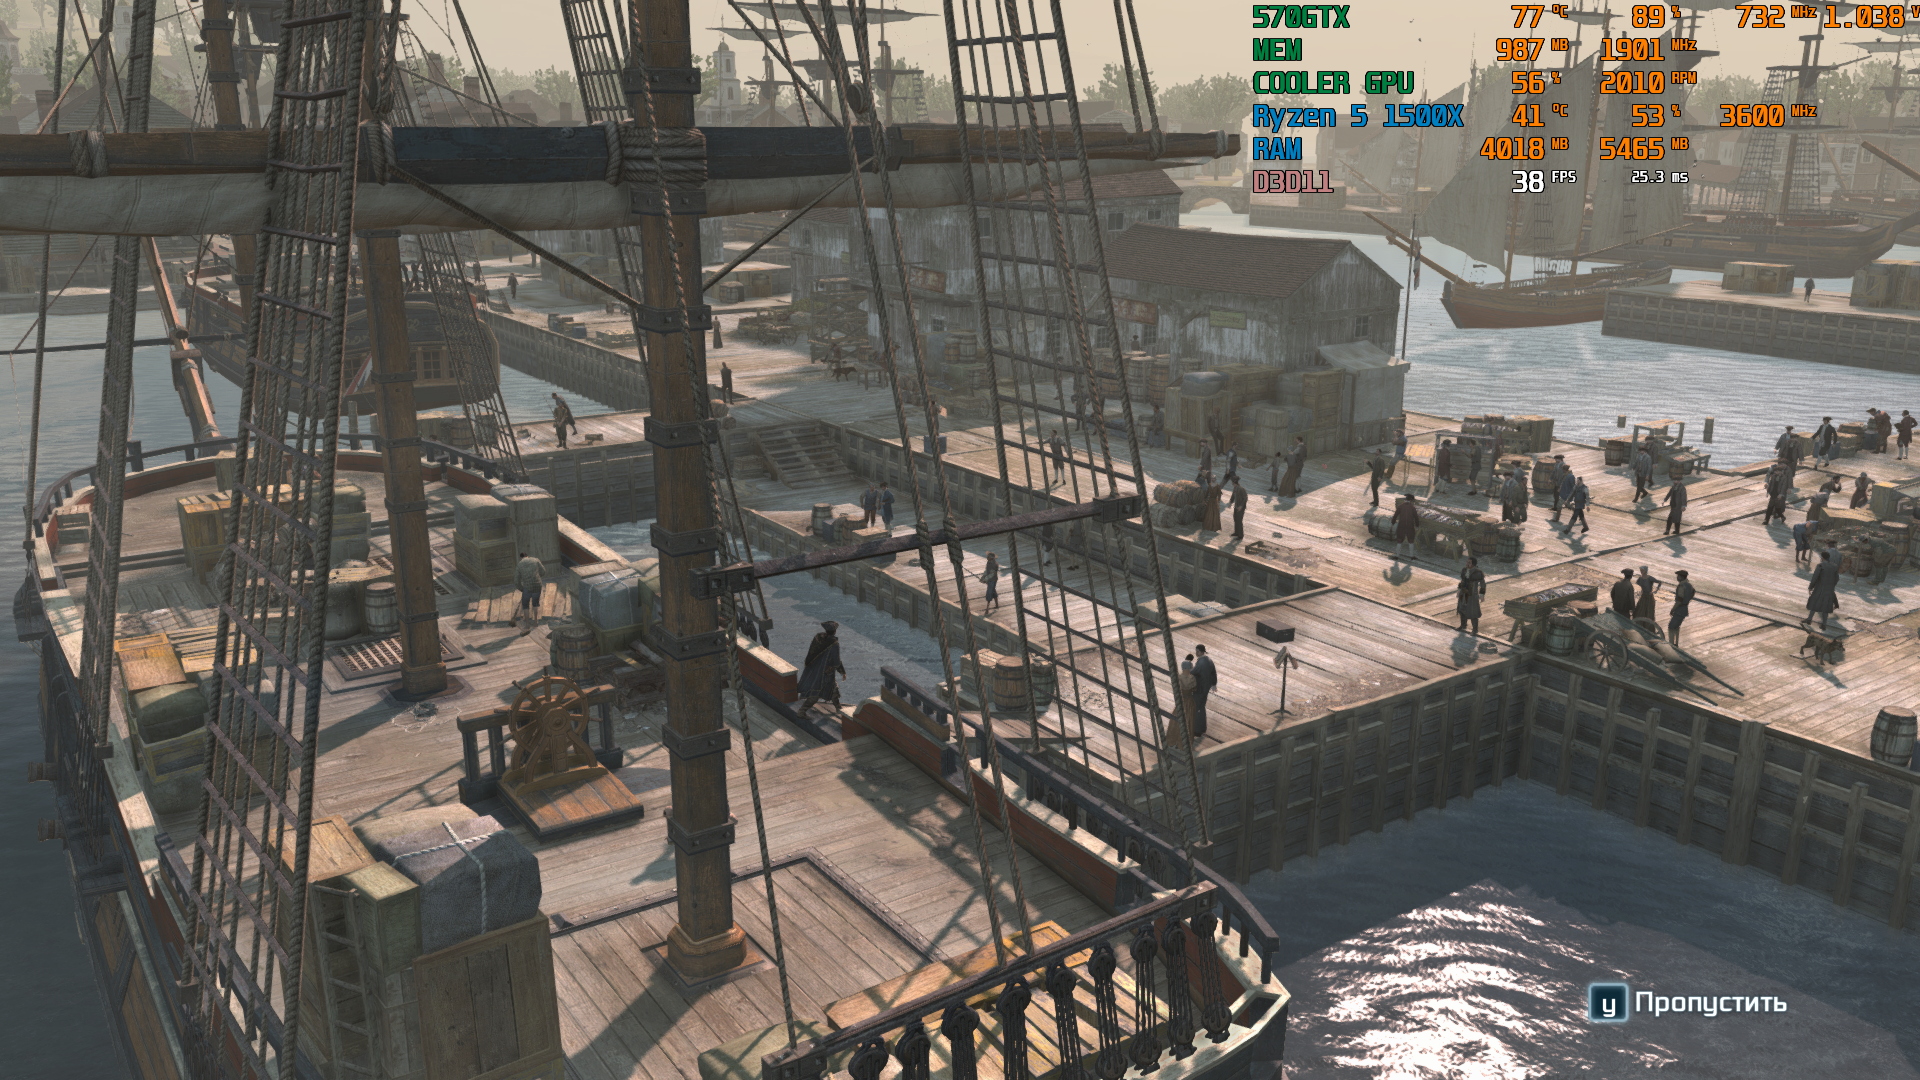 AC3SP_2018_09_21_22_48_33_764.png - Assassin's Creed 3